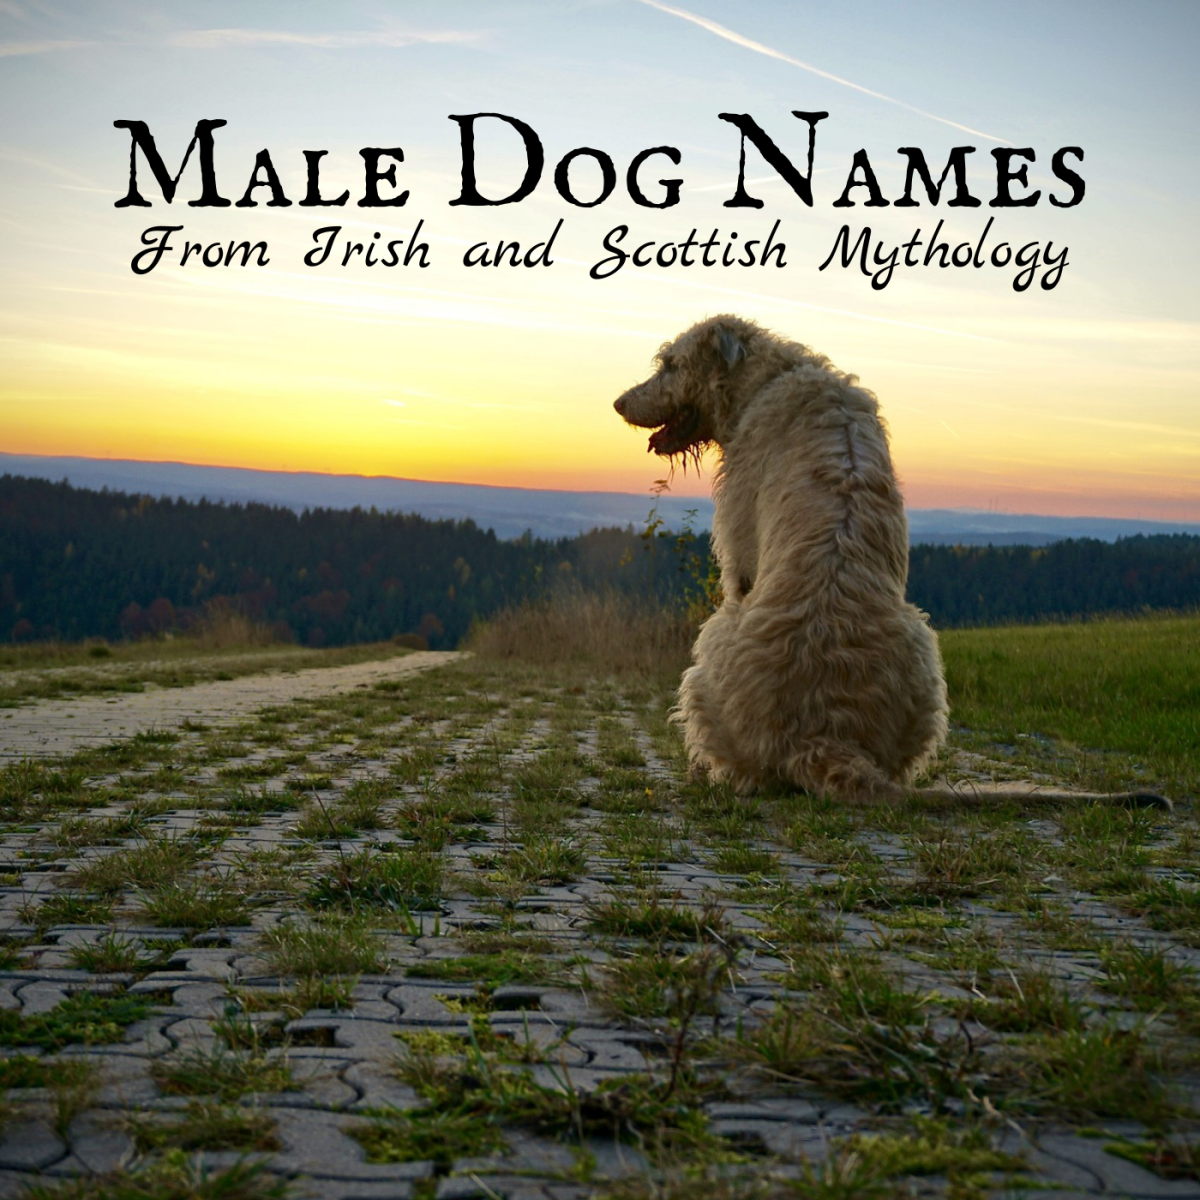 Choose from a list of meaningful dog names inspired by Celtic history and legend.